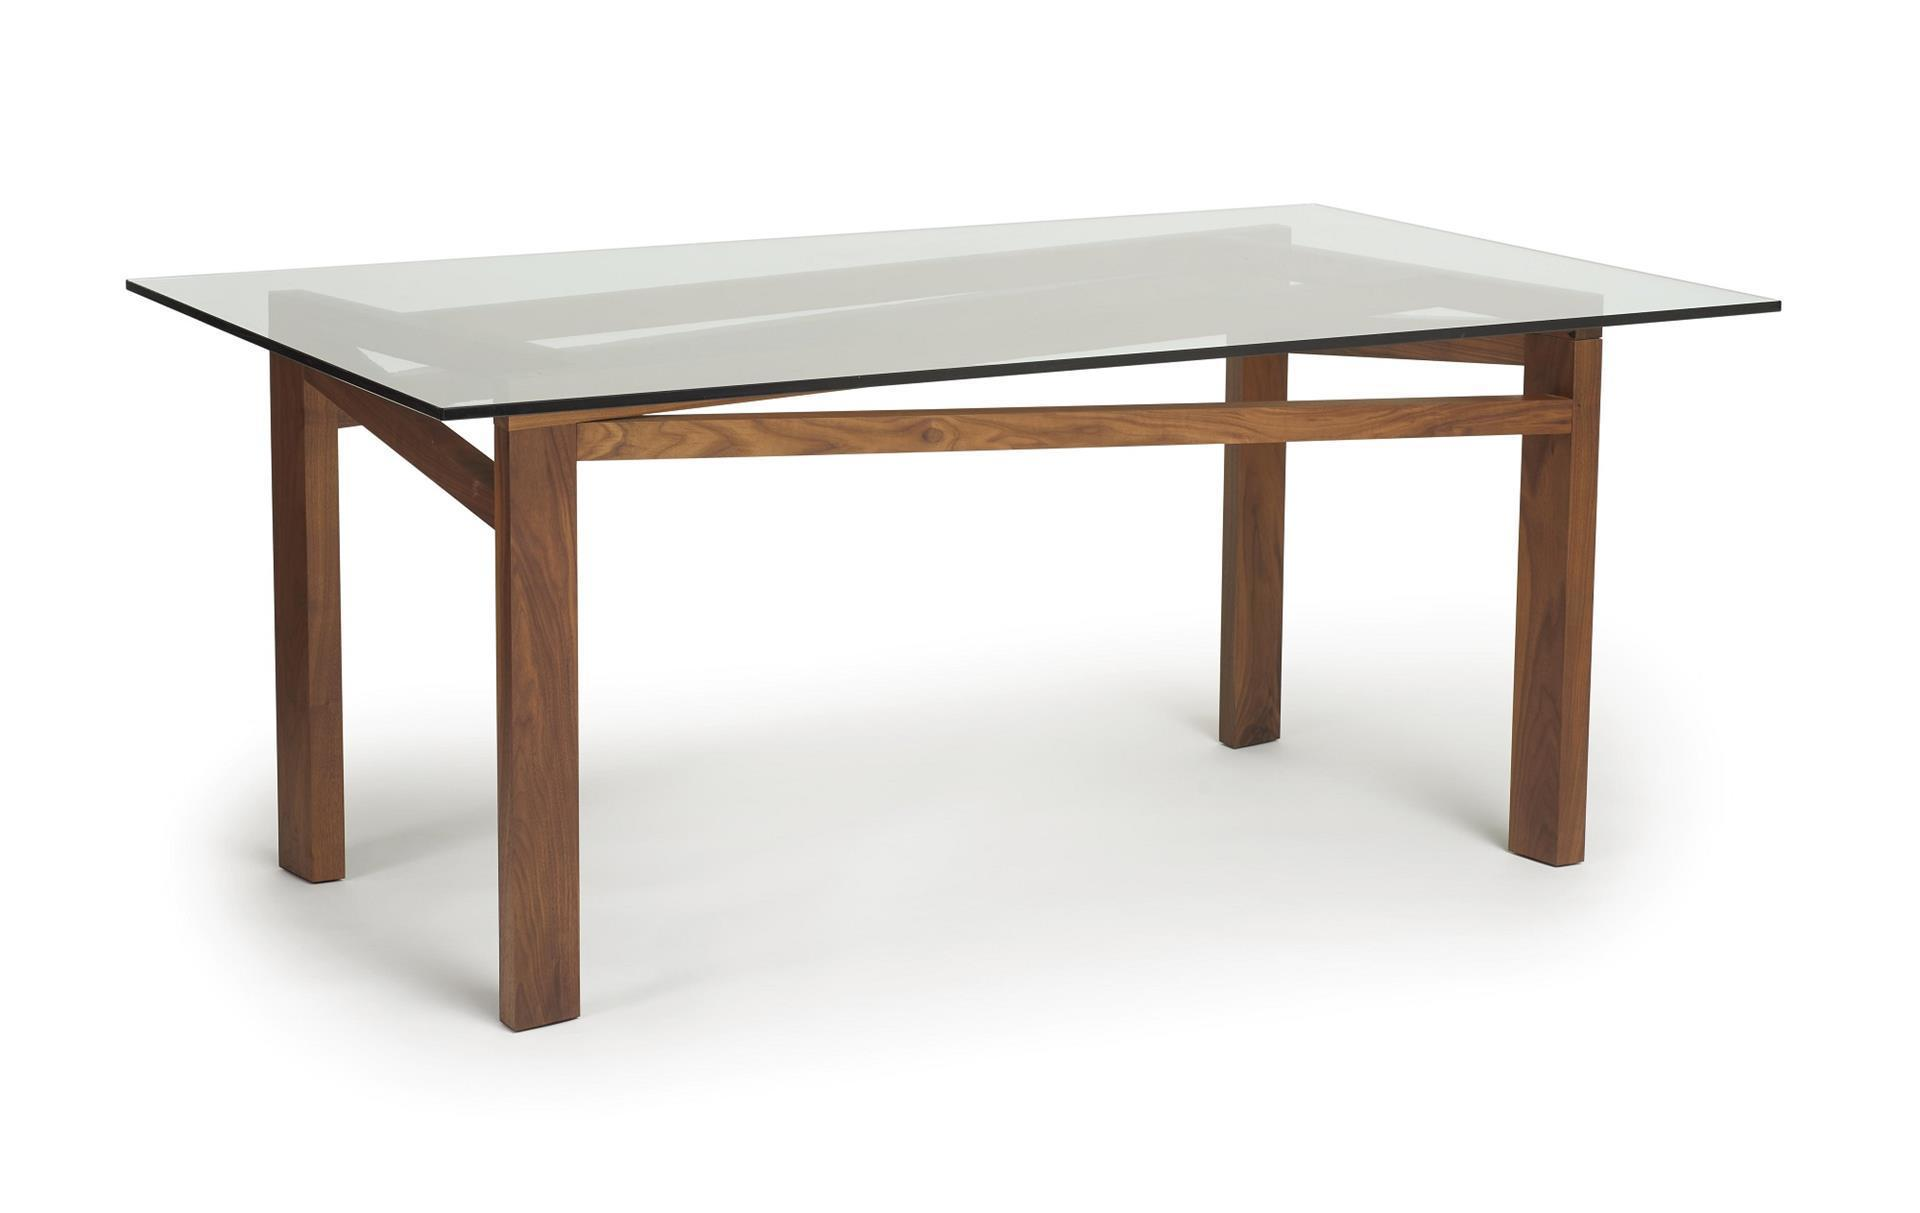 Copeland glide planes glass top dining table